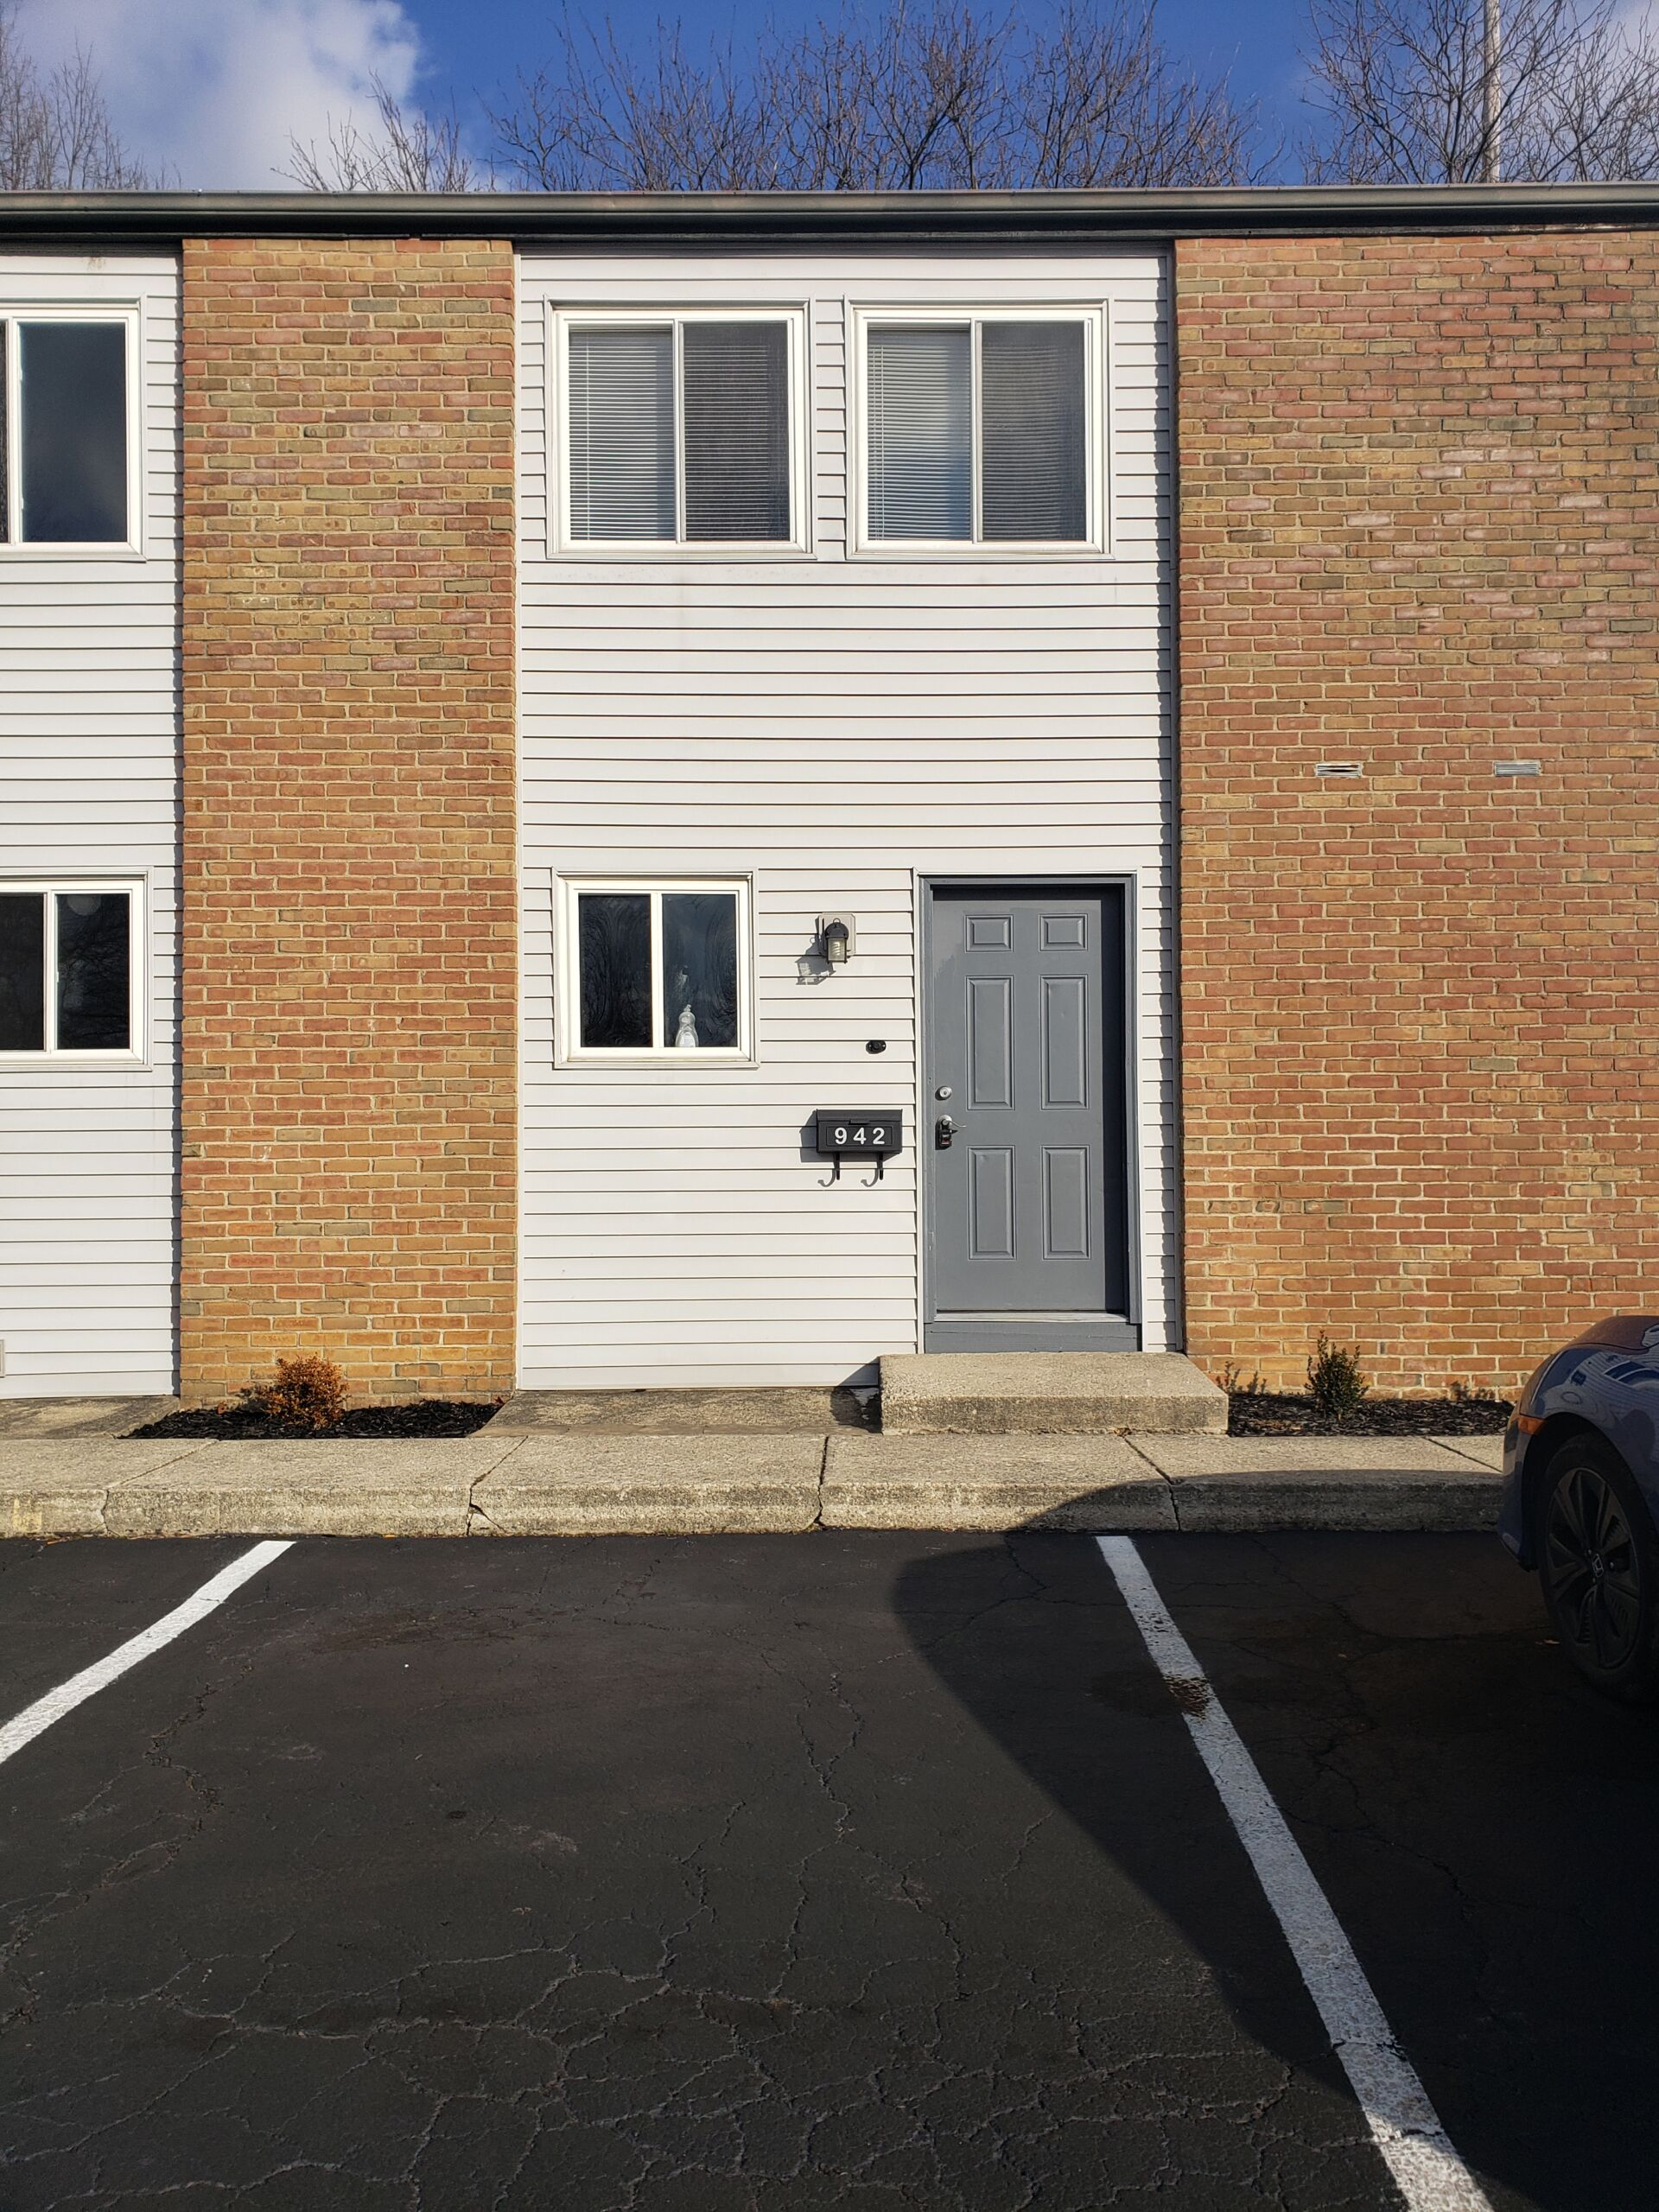 Updated 2 BR Townhouse in Westerville Schools